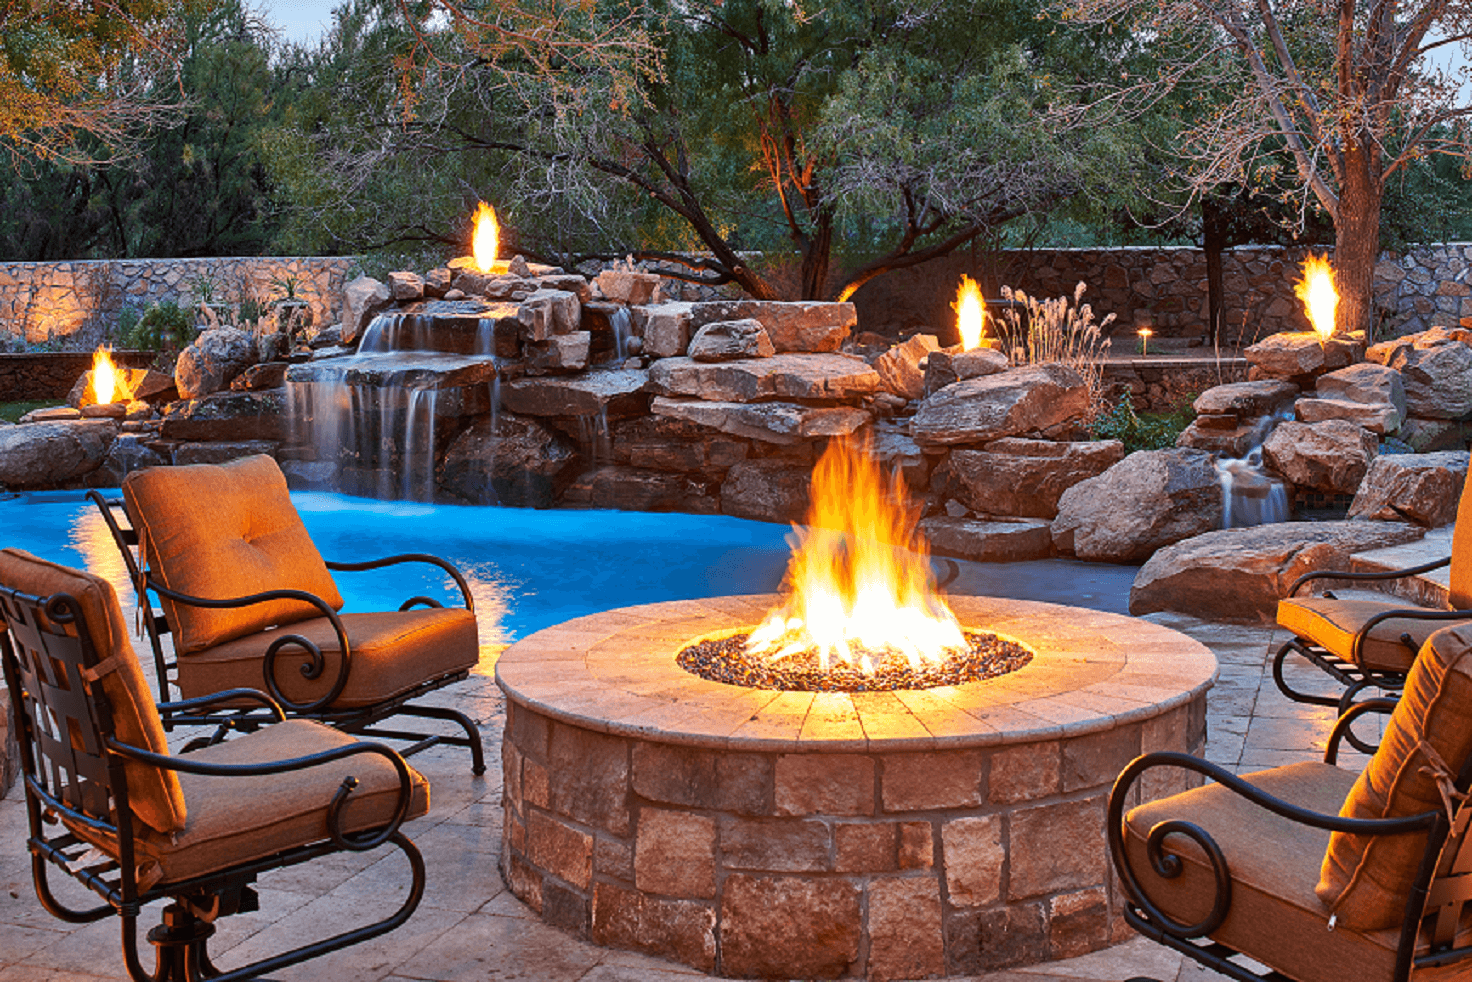 Dreaming Of A New Pool Or Pool Remodel?